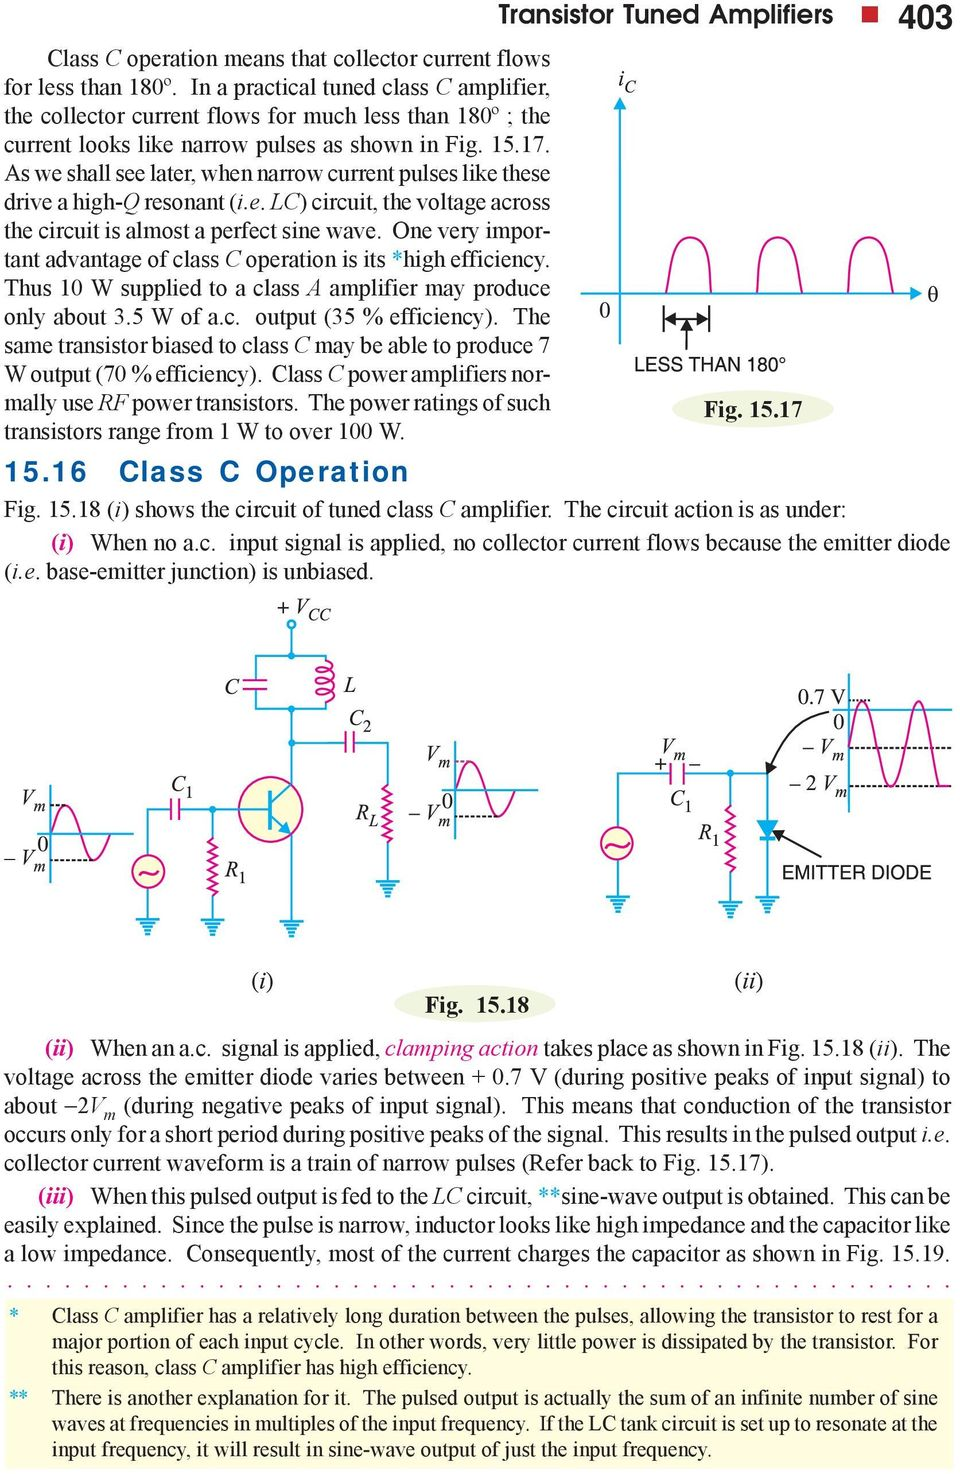 Transistor Tuned Amplifiers Pdf Singlejunction Sine Wave Oscillator Circuit Diagramas As We Shall See Later When Narrow Current Pulses Like These Drive A High